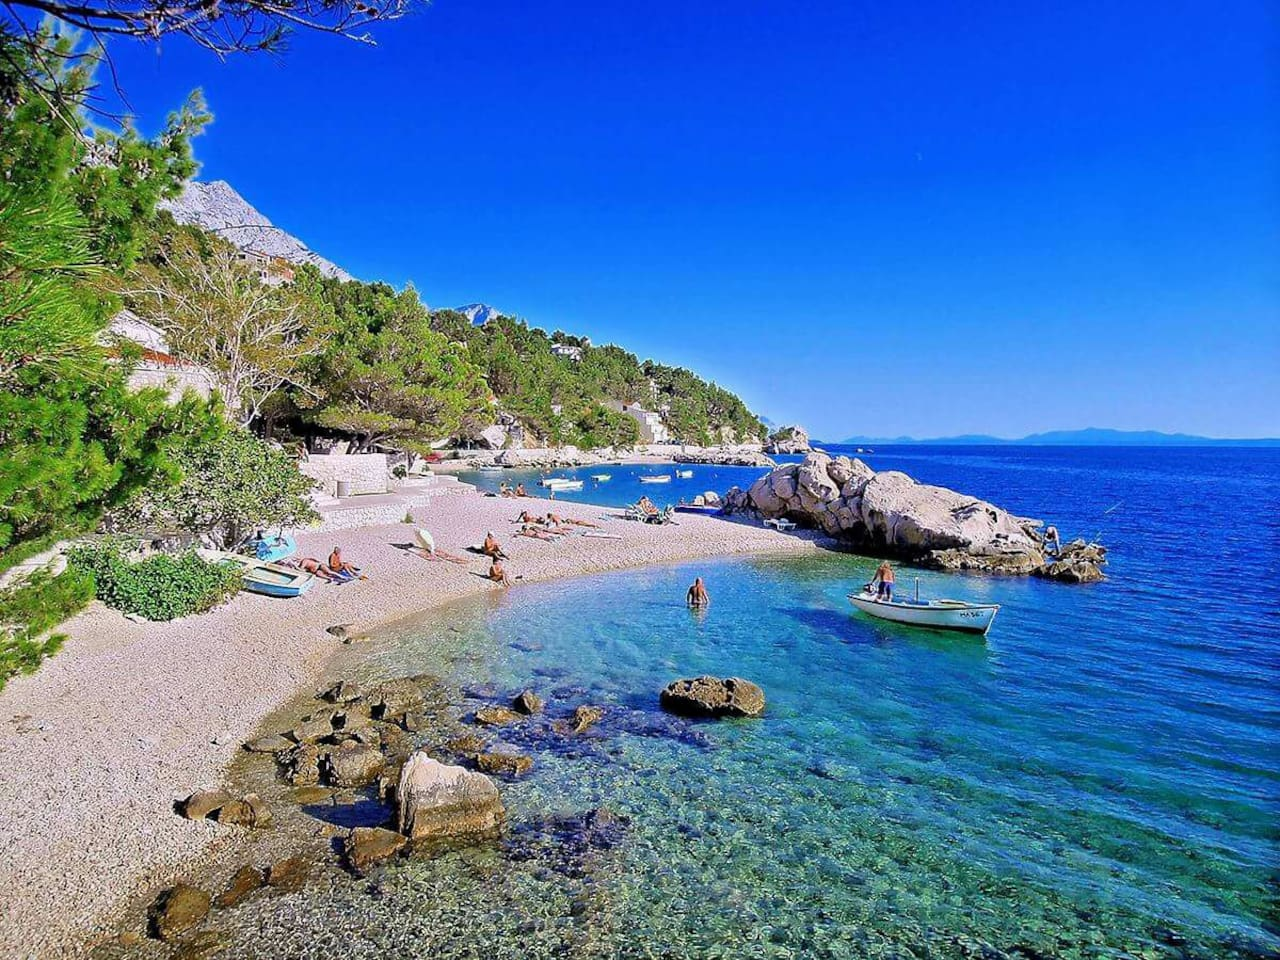 Beach under our house 2 min away by foot  jelena.ursic@outlook.com